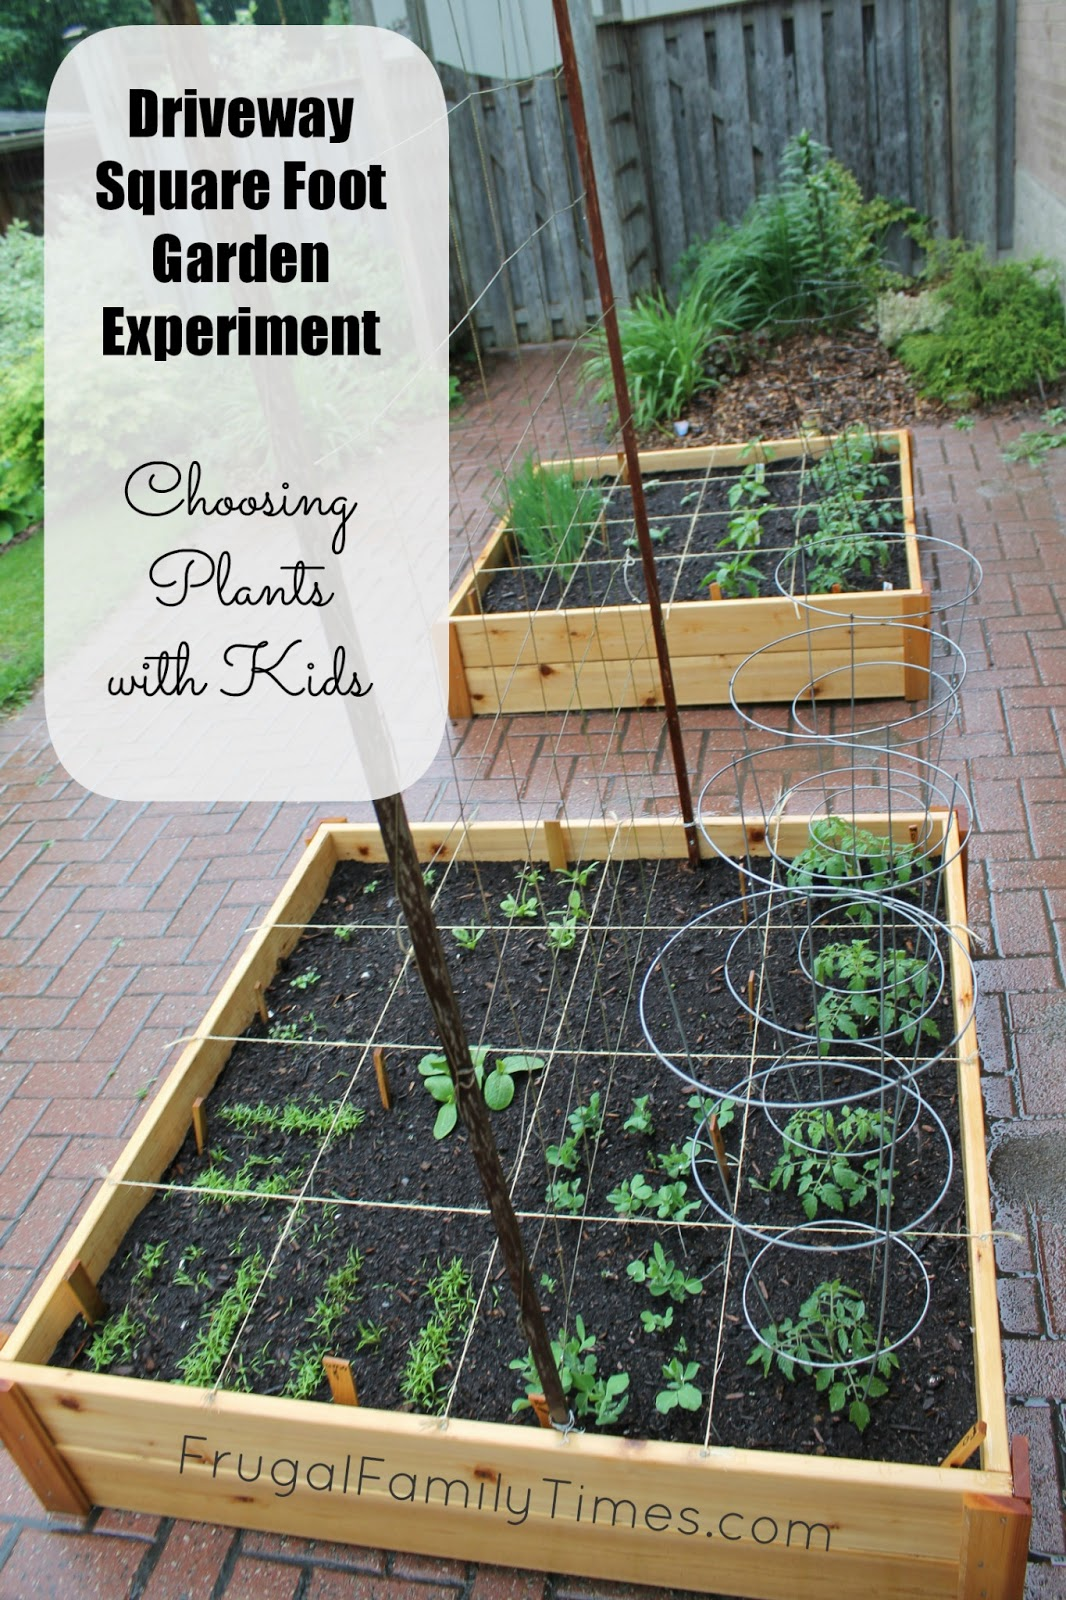 Choosing Vegetable Plants With Kids (Our Square Foot